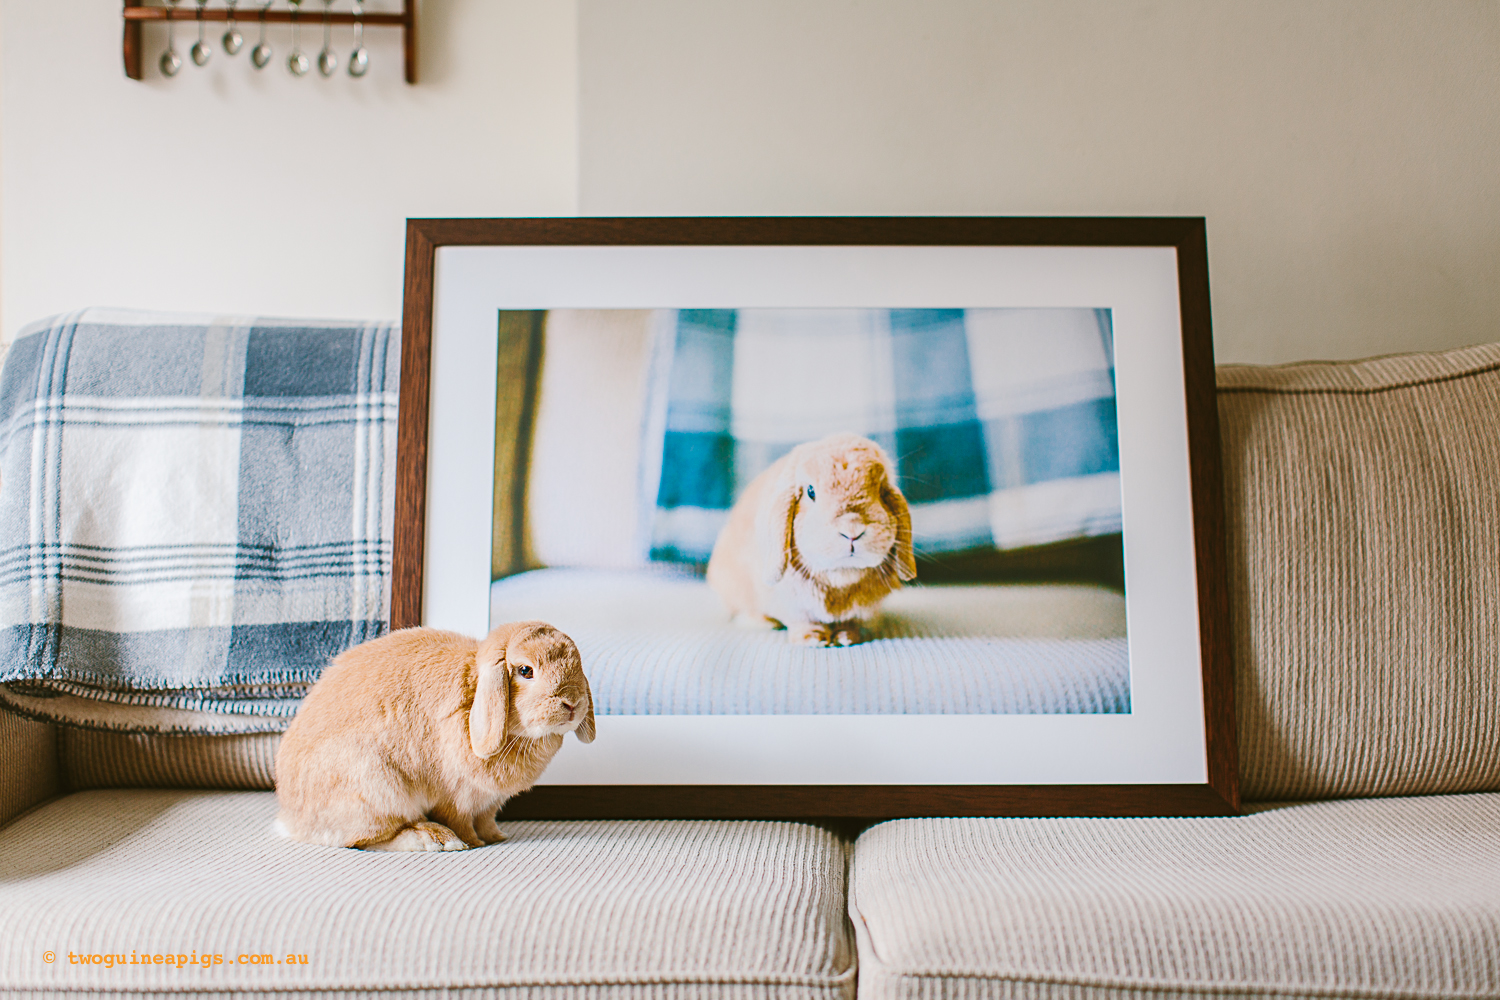 twoguineapigs_pet_photography_waffles_lop_eared_bunny